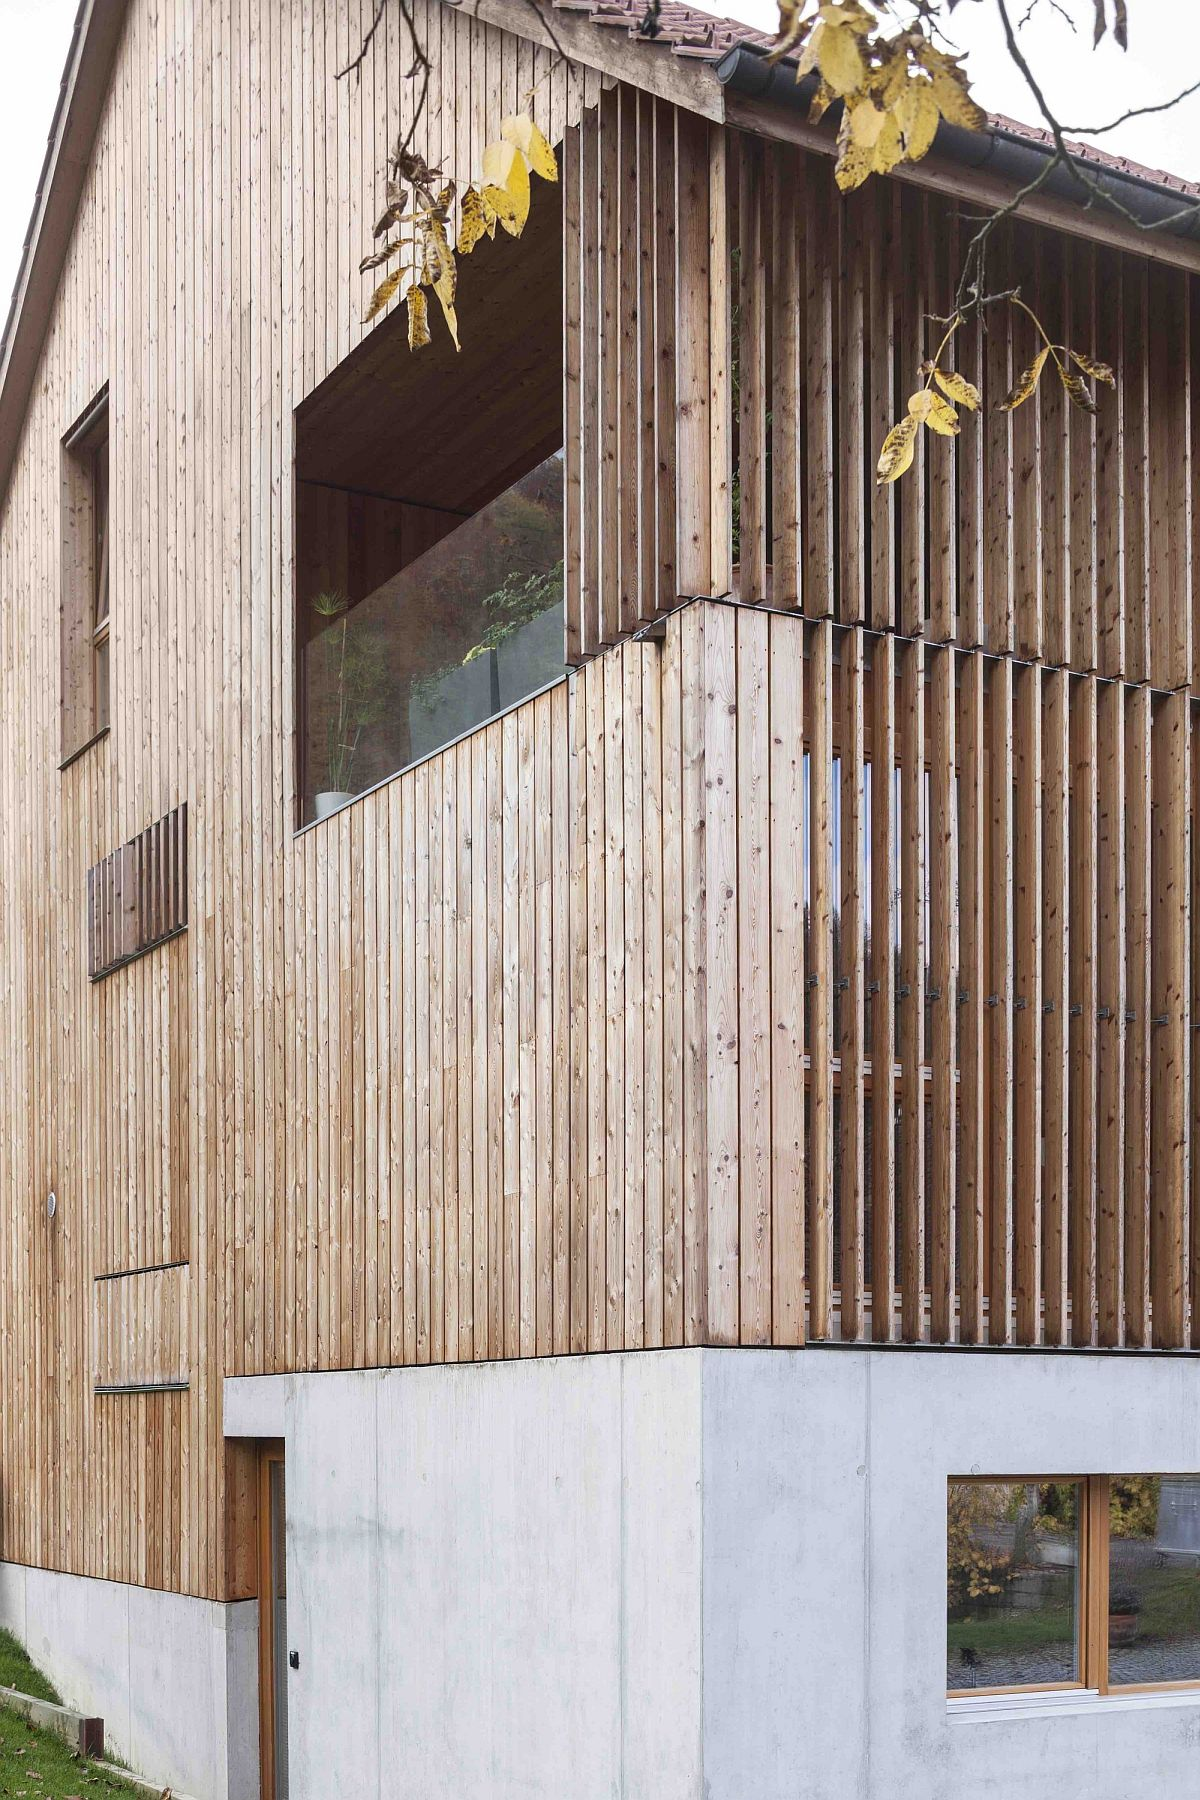 Wooden slats coupled with modern finishes revitalize old barn